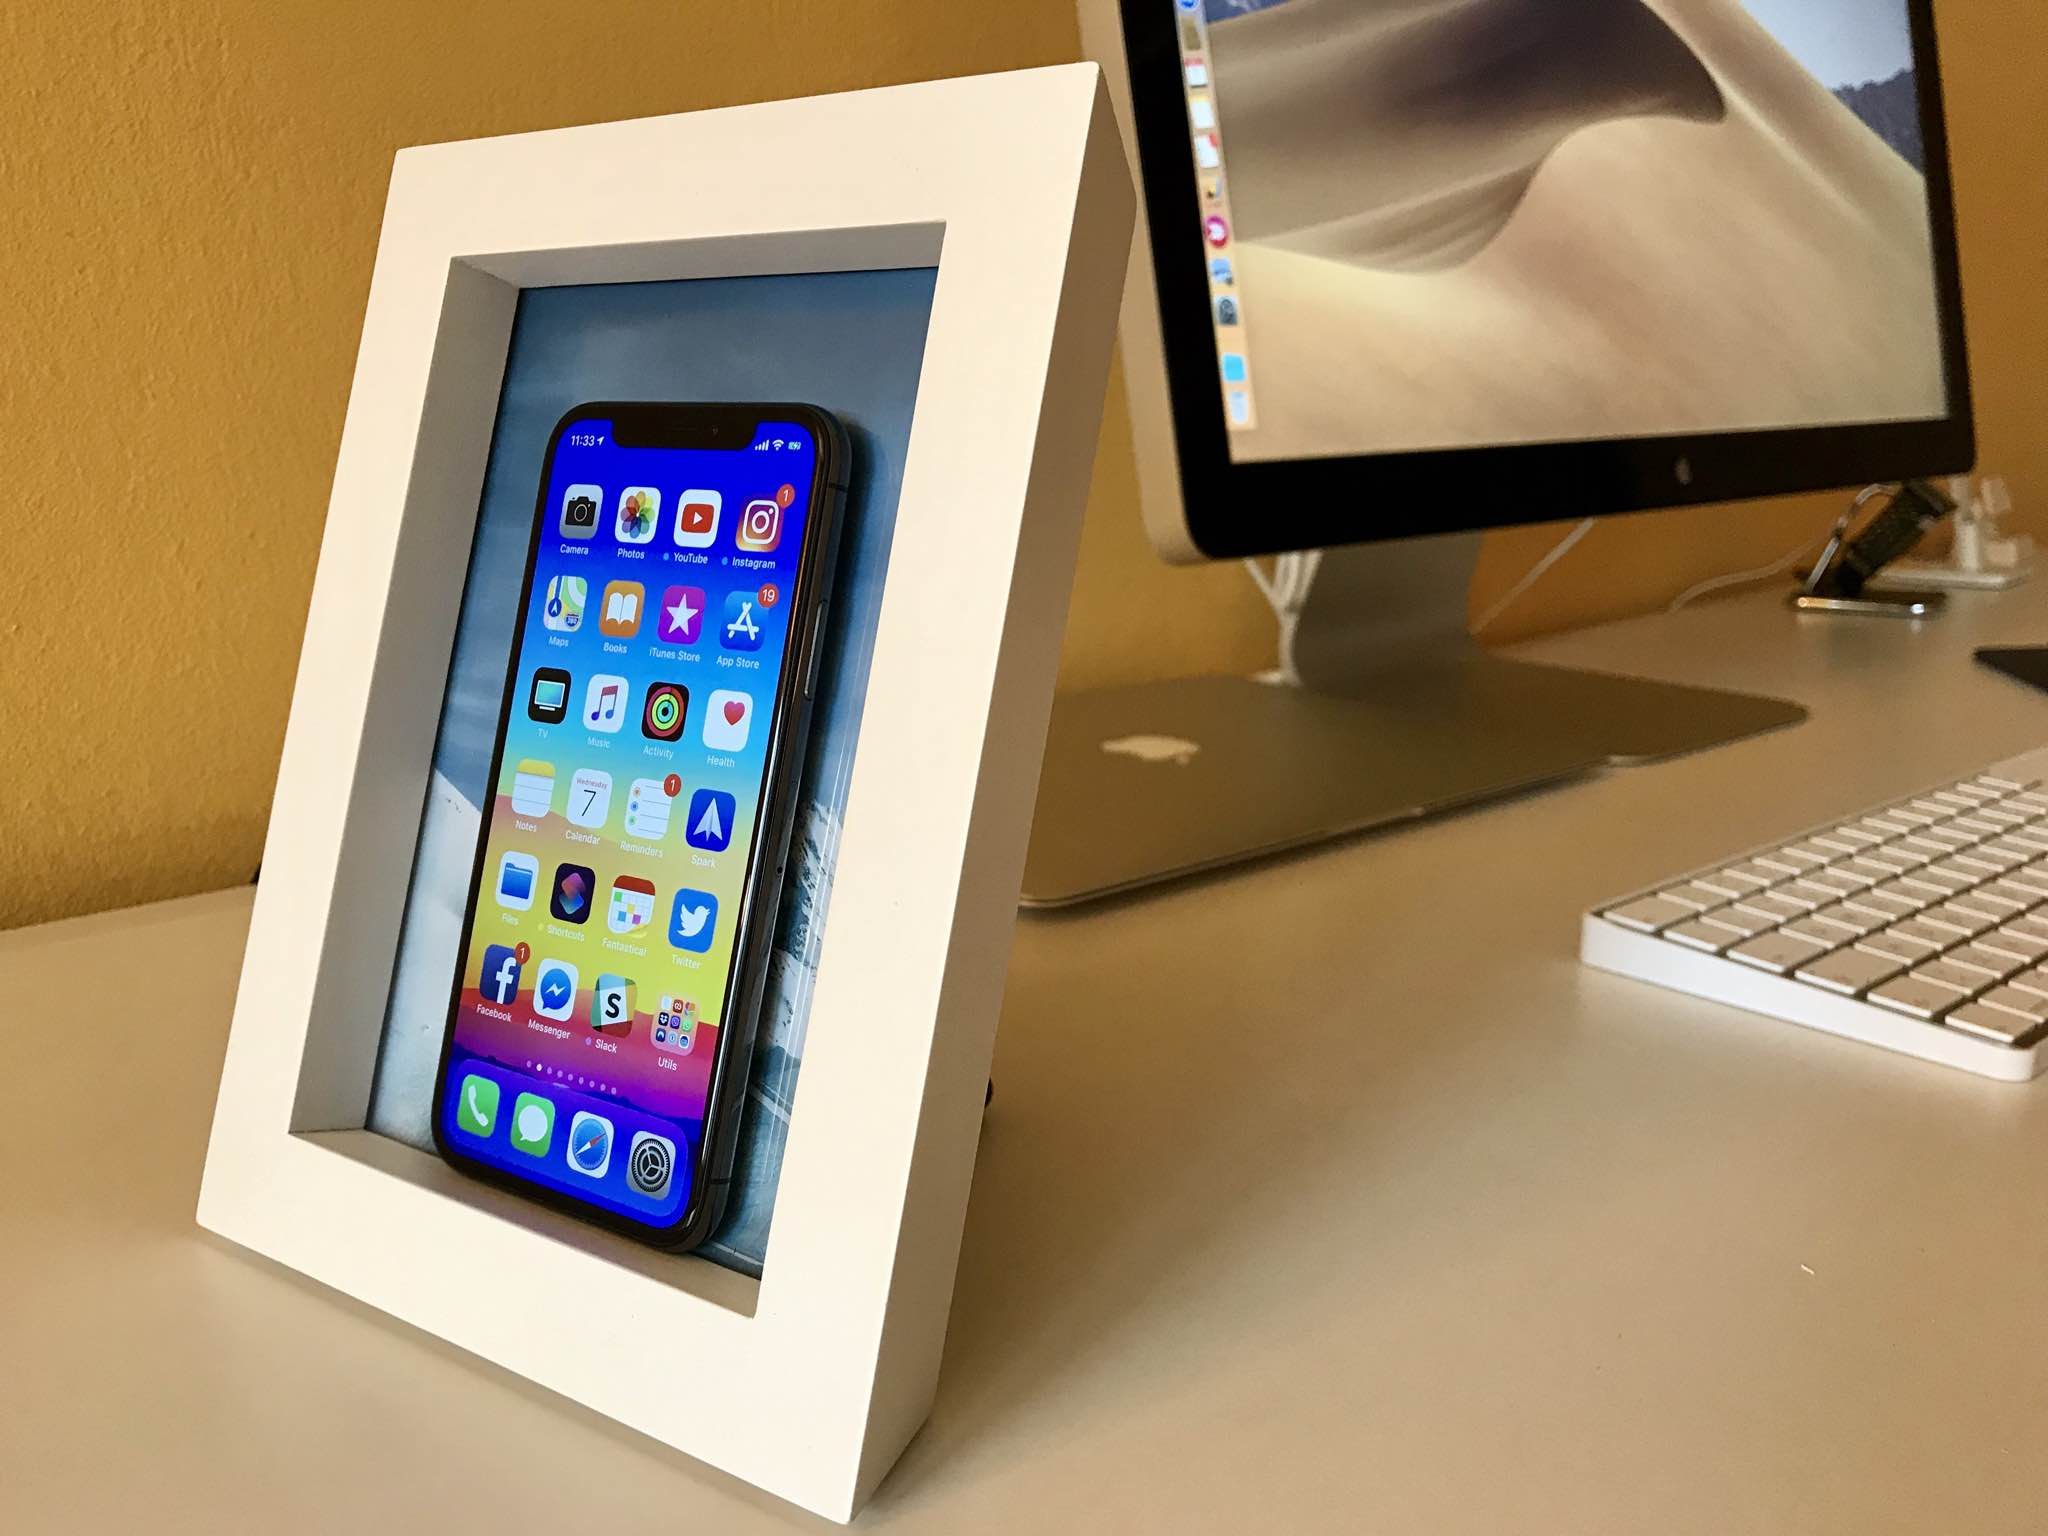 review twelve south powerpic a 5 7 picture frame that wirelessly charges your iphone. Black Bedroom Furniture Sets. Home Design Ideas